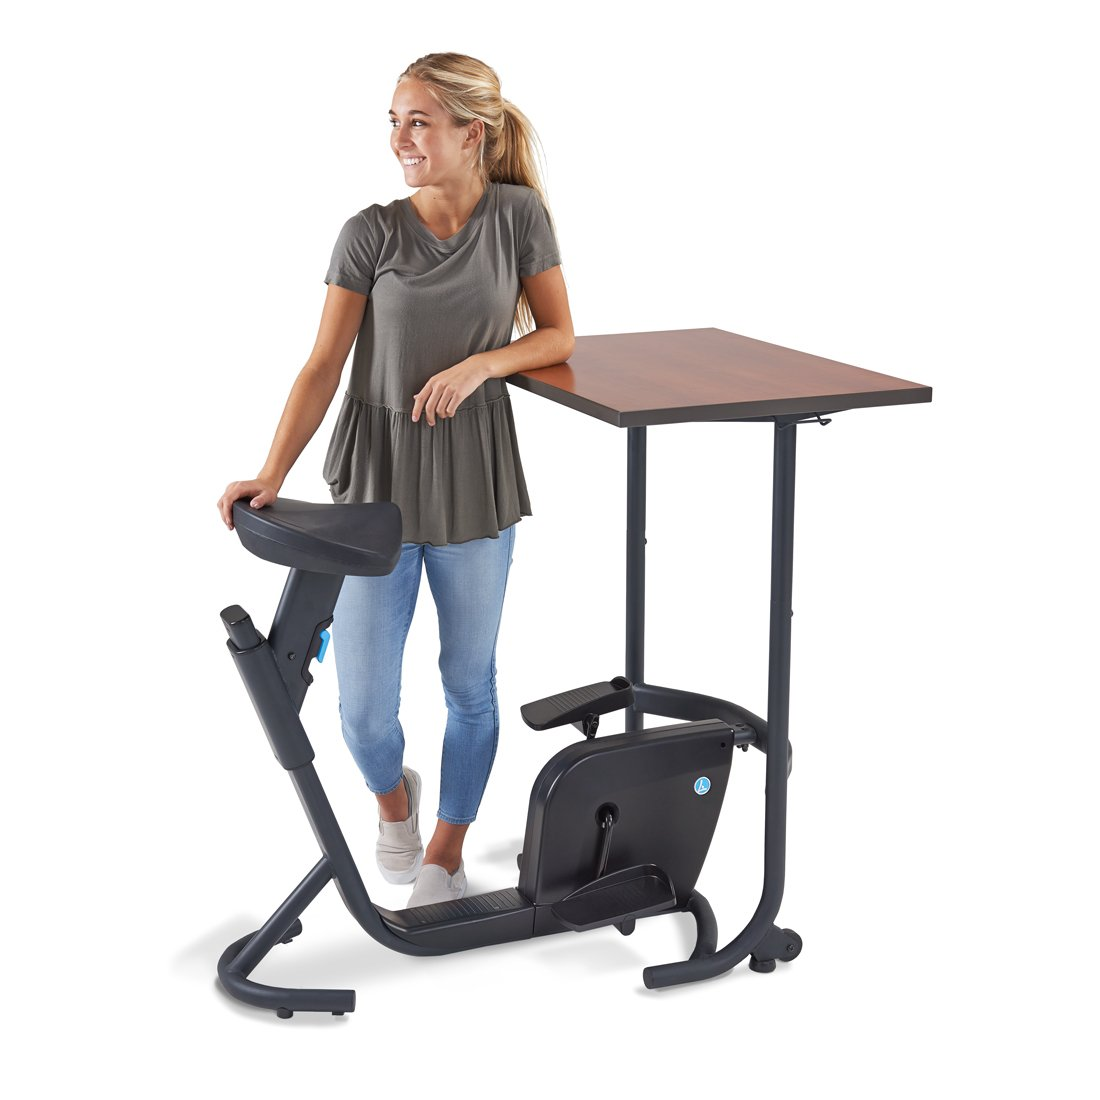 exercise desk cycle foot cardio office under bike pin pedal workout portable fitness